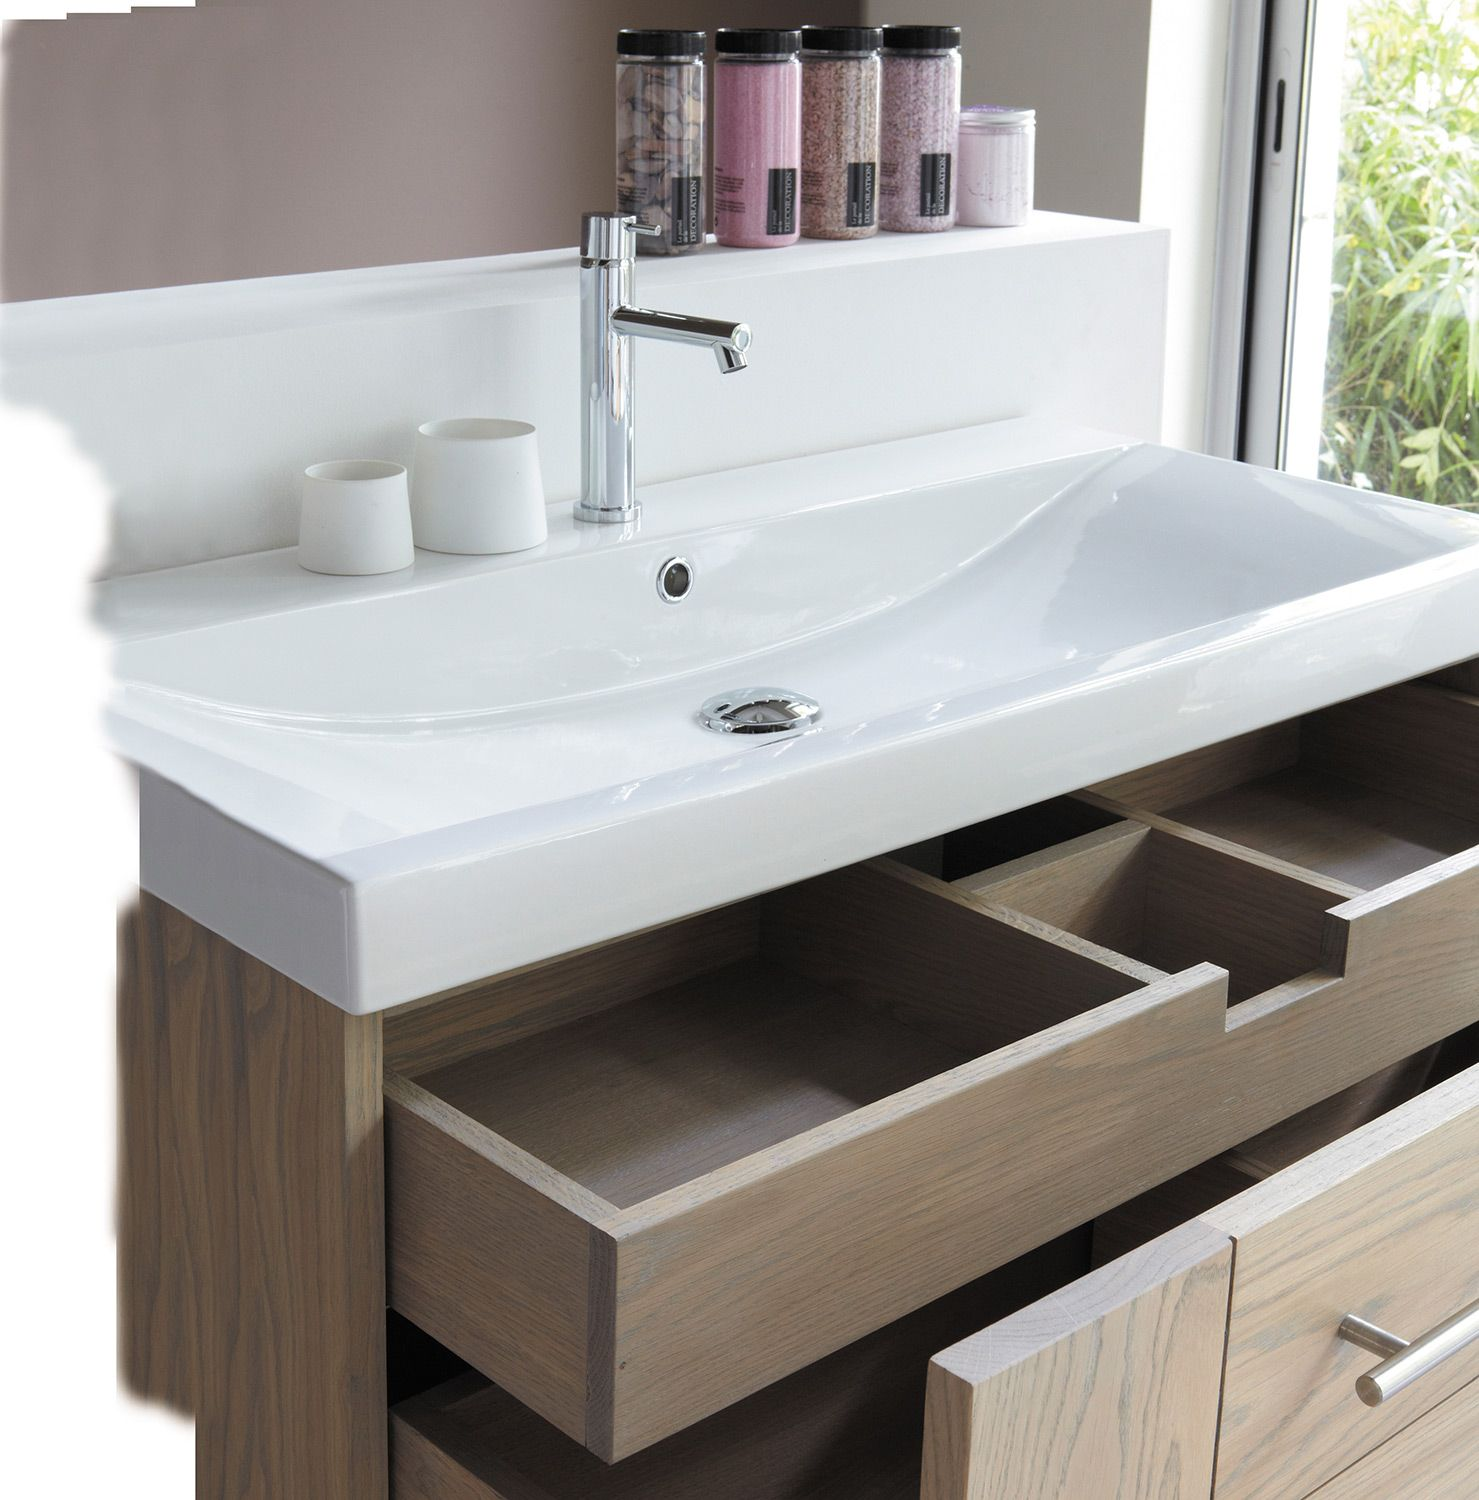 The Soft Bathroom Vanity By Line Art Offers Fresh Style And Lots Of Storage Floating Unit Includes White Ceramic Basin Solid Oak Construction A